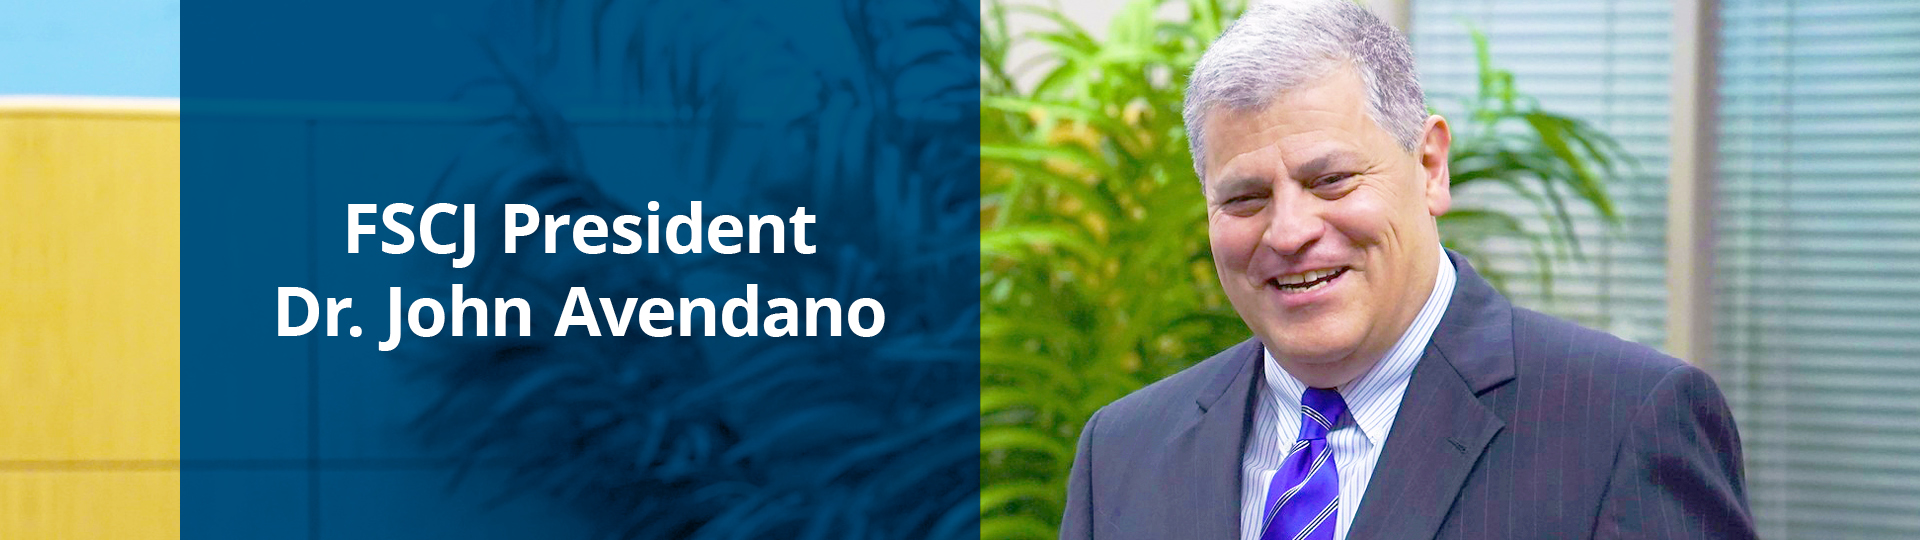 Dr Avendano landing page banner 1920x540_FINAL